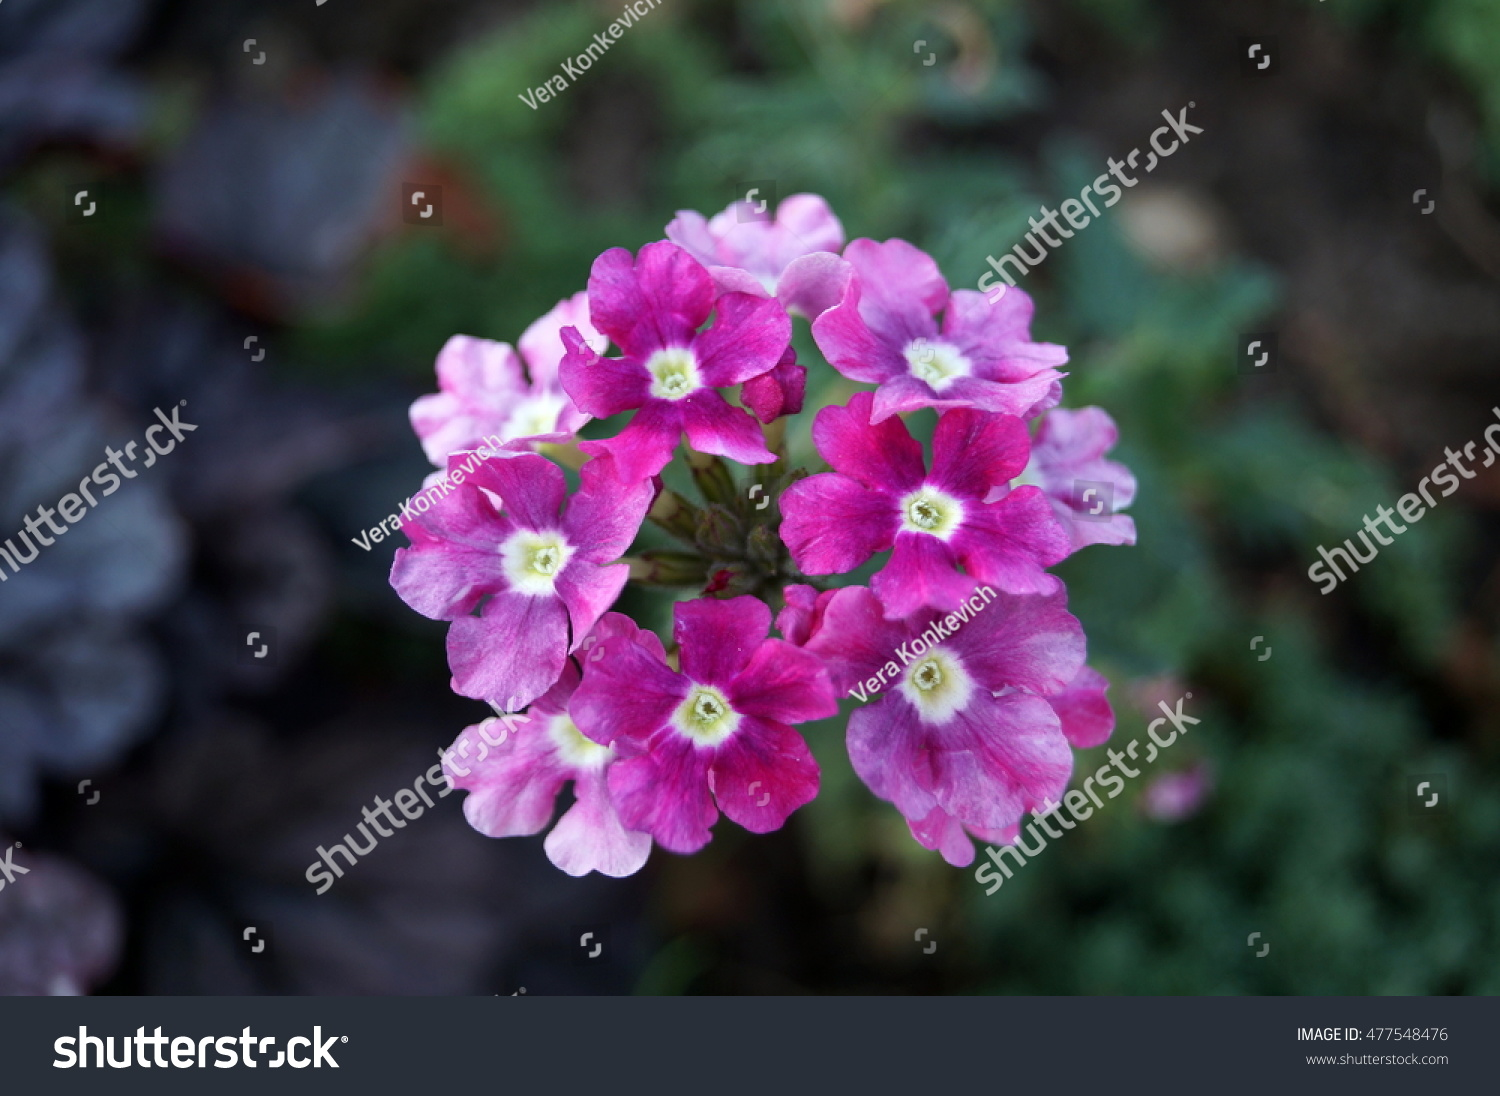 Inflorescence Small Purple Flowers On Plant Stock Photo Edit Now